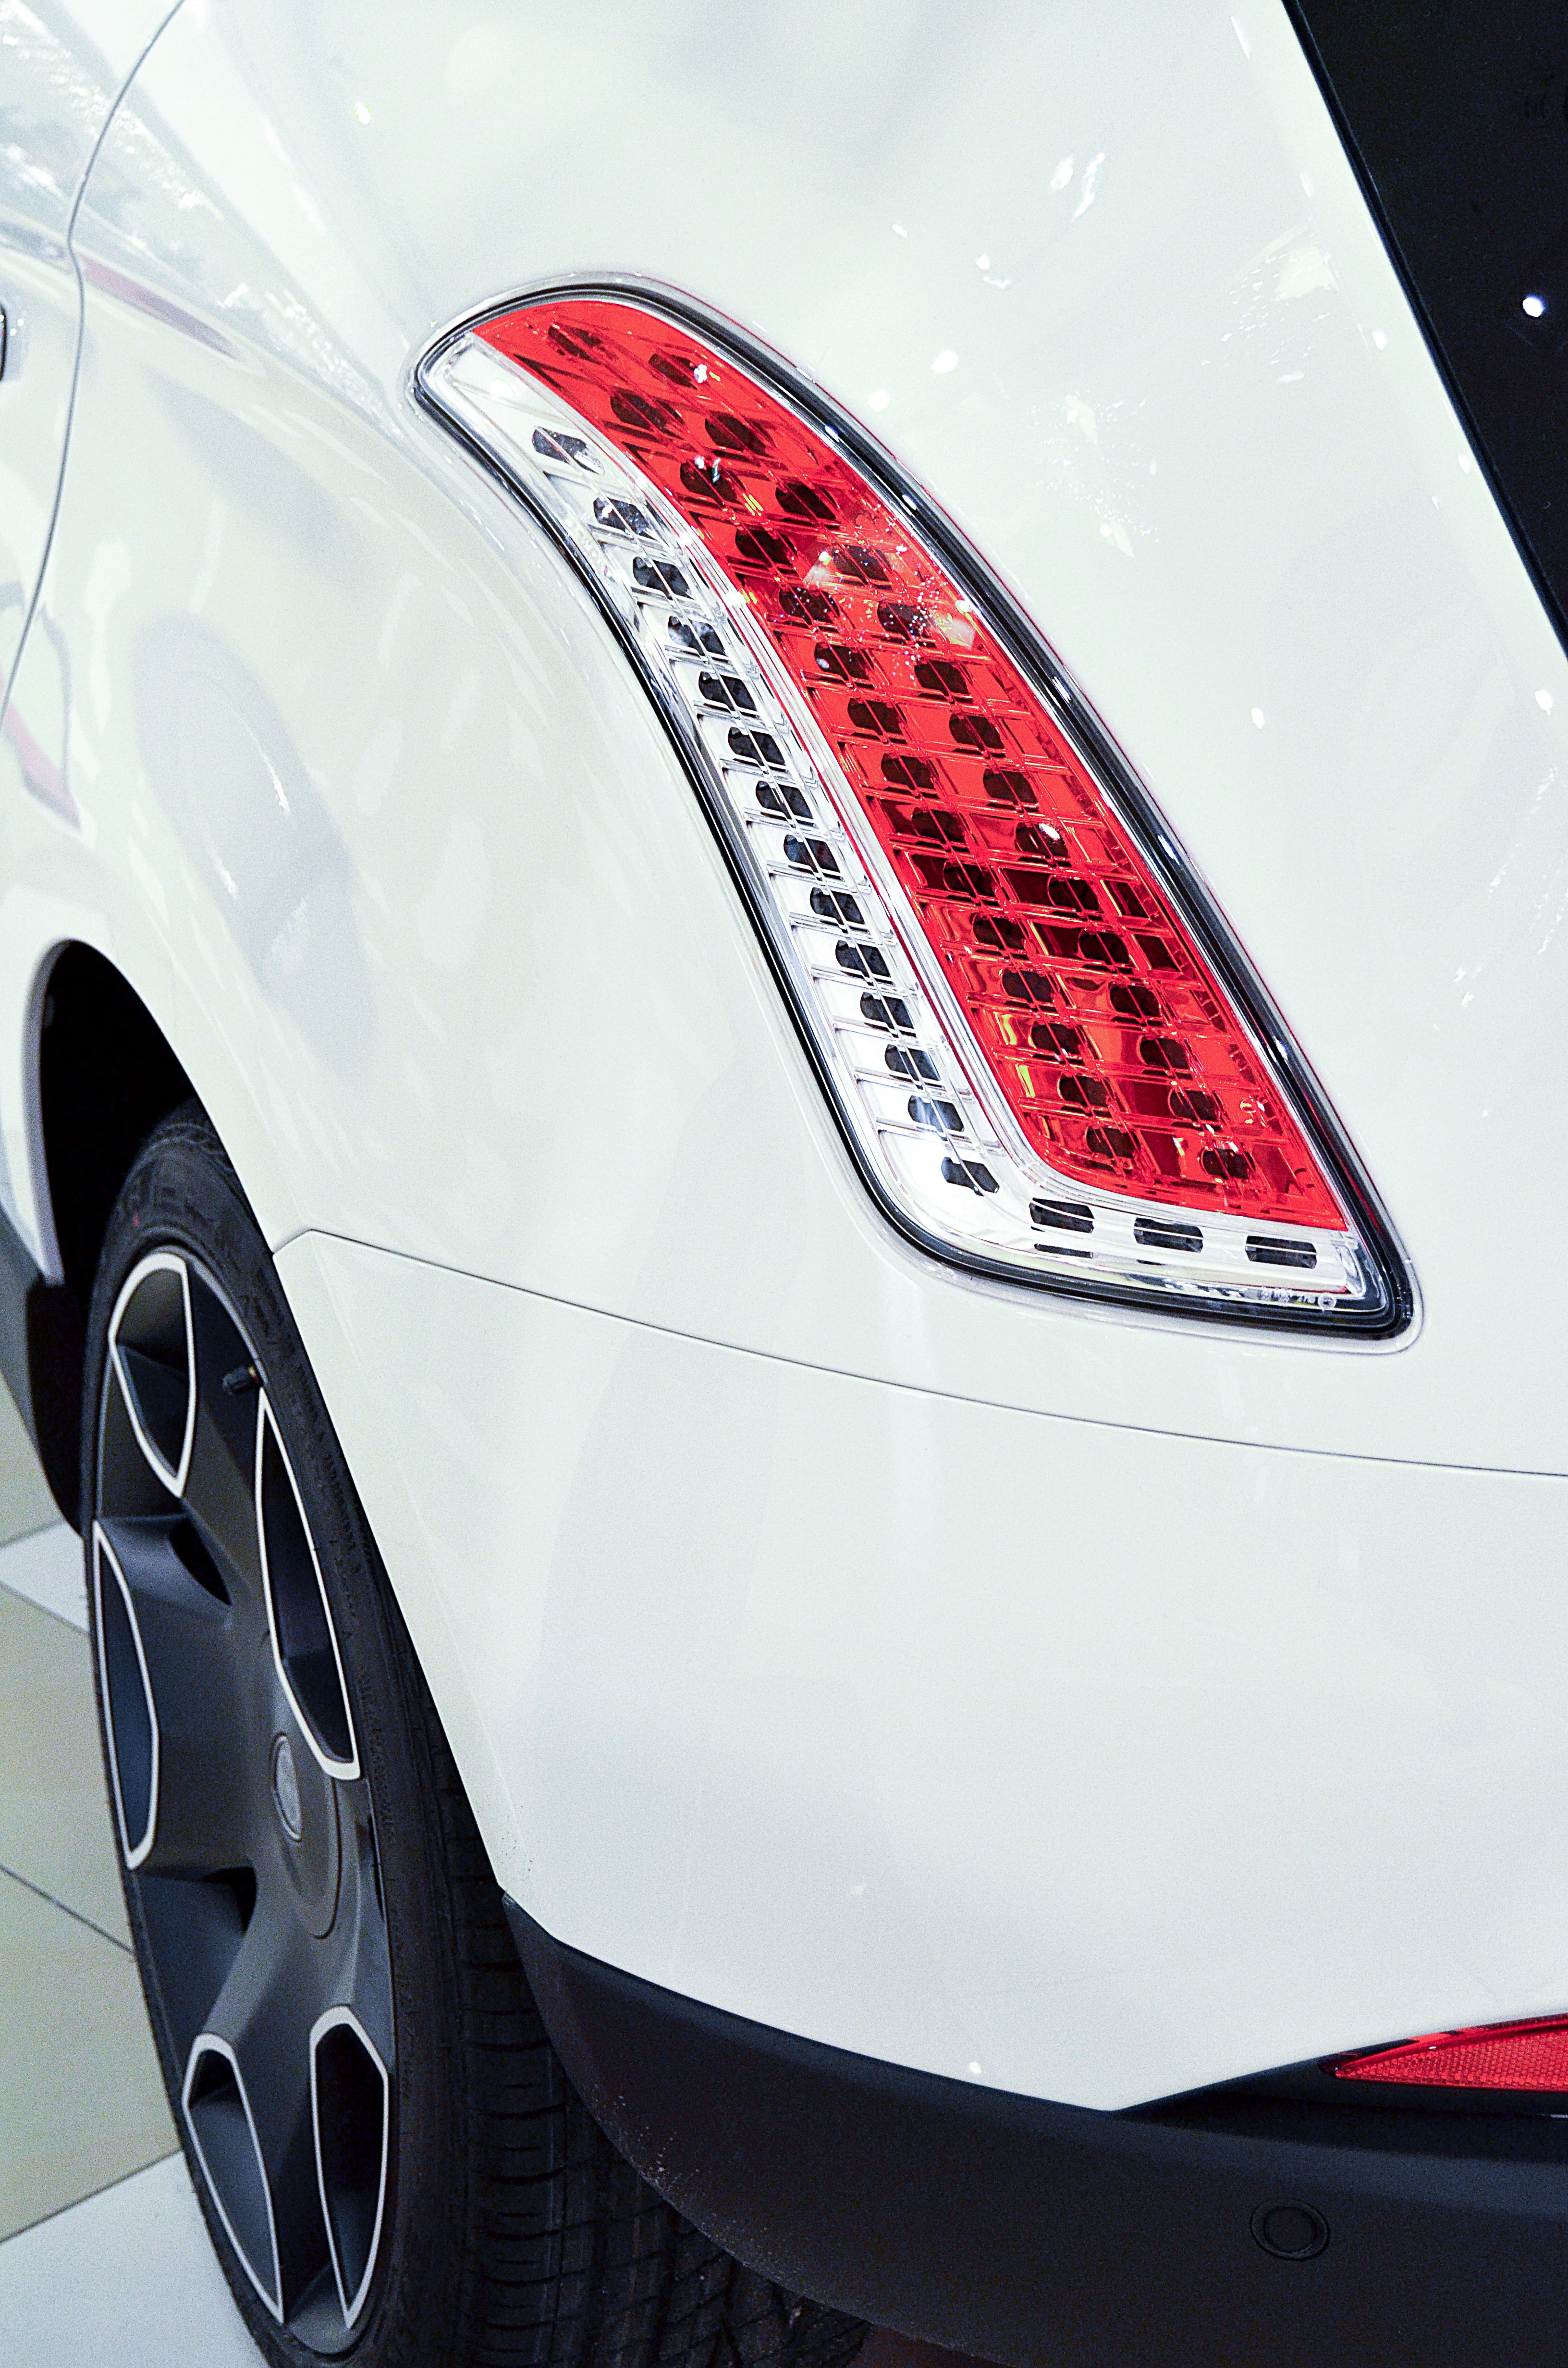 Best Car Wallpaper Download Red And White Car Tail Light 183 Free Stock Photo